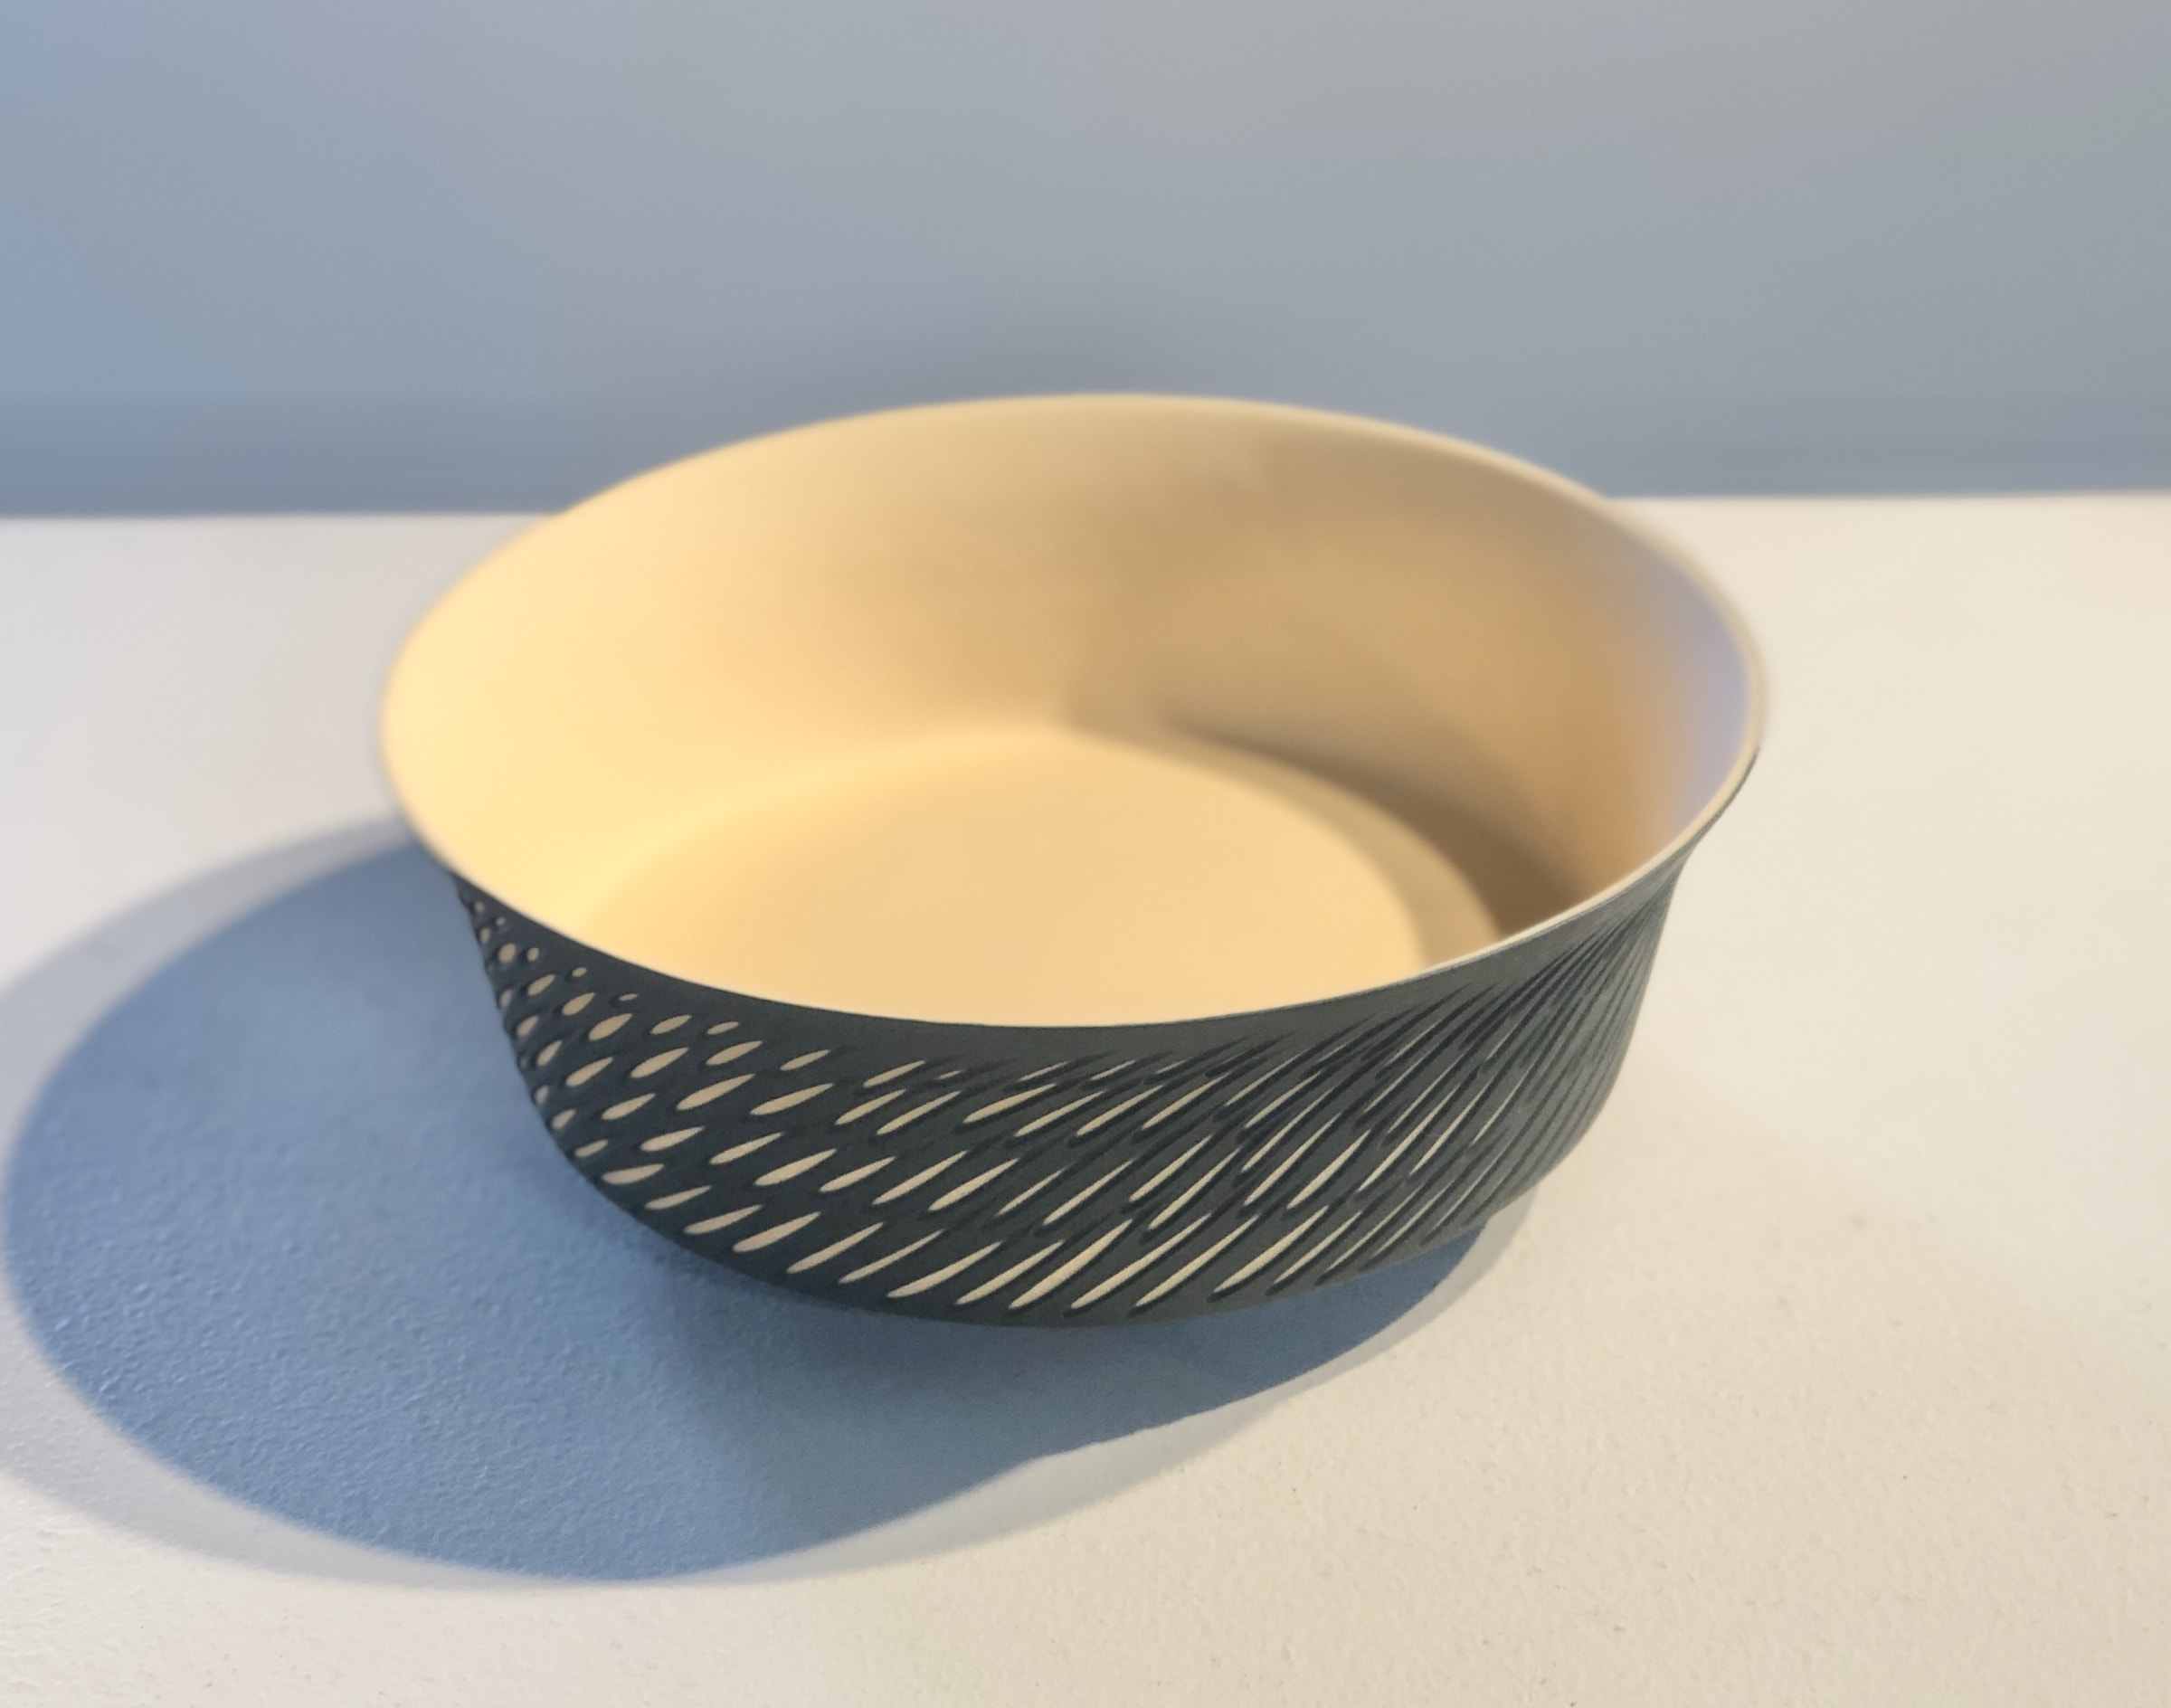 """<span class=""""link fancybox-details-link""""><a href=""""/artists/60-sasha-wardell/works/7061-sasha-wardell-small-straight-sided-shoal-dish-2020/"""">View Detail Page</a></span><div class=""""artist""""><strong>Sasha Wardell</strong></div> b. 1956 <div class=""""title""""><em>Small Straight Sided Shoal Dish</em>, 2020</div> <div class=""""medium"""">Layered Porcelain </div><div class=""""price"""">£210.00</div><div class=""""copyright_line"""">Ownart: £21 x 10 Months, 0% APR</div>"""